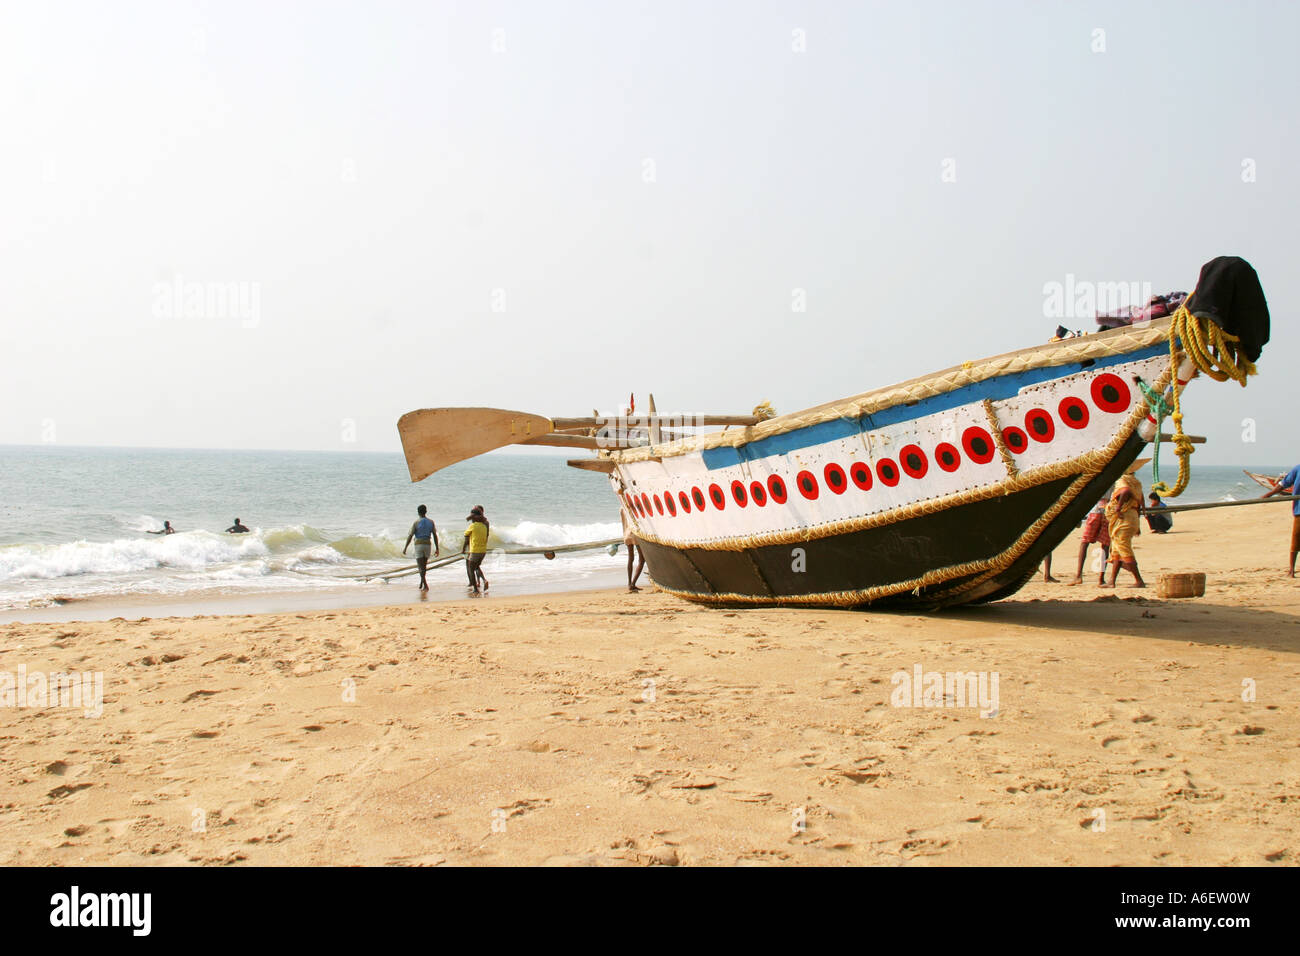 Fishing boat on the sands at Puri ,Bay of Bengal Orissa India               Fishing boat on the beach at Puri ,B Stock Photo